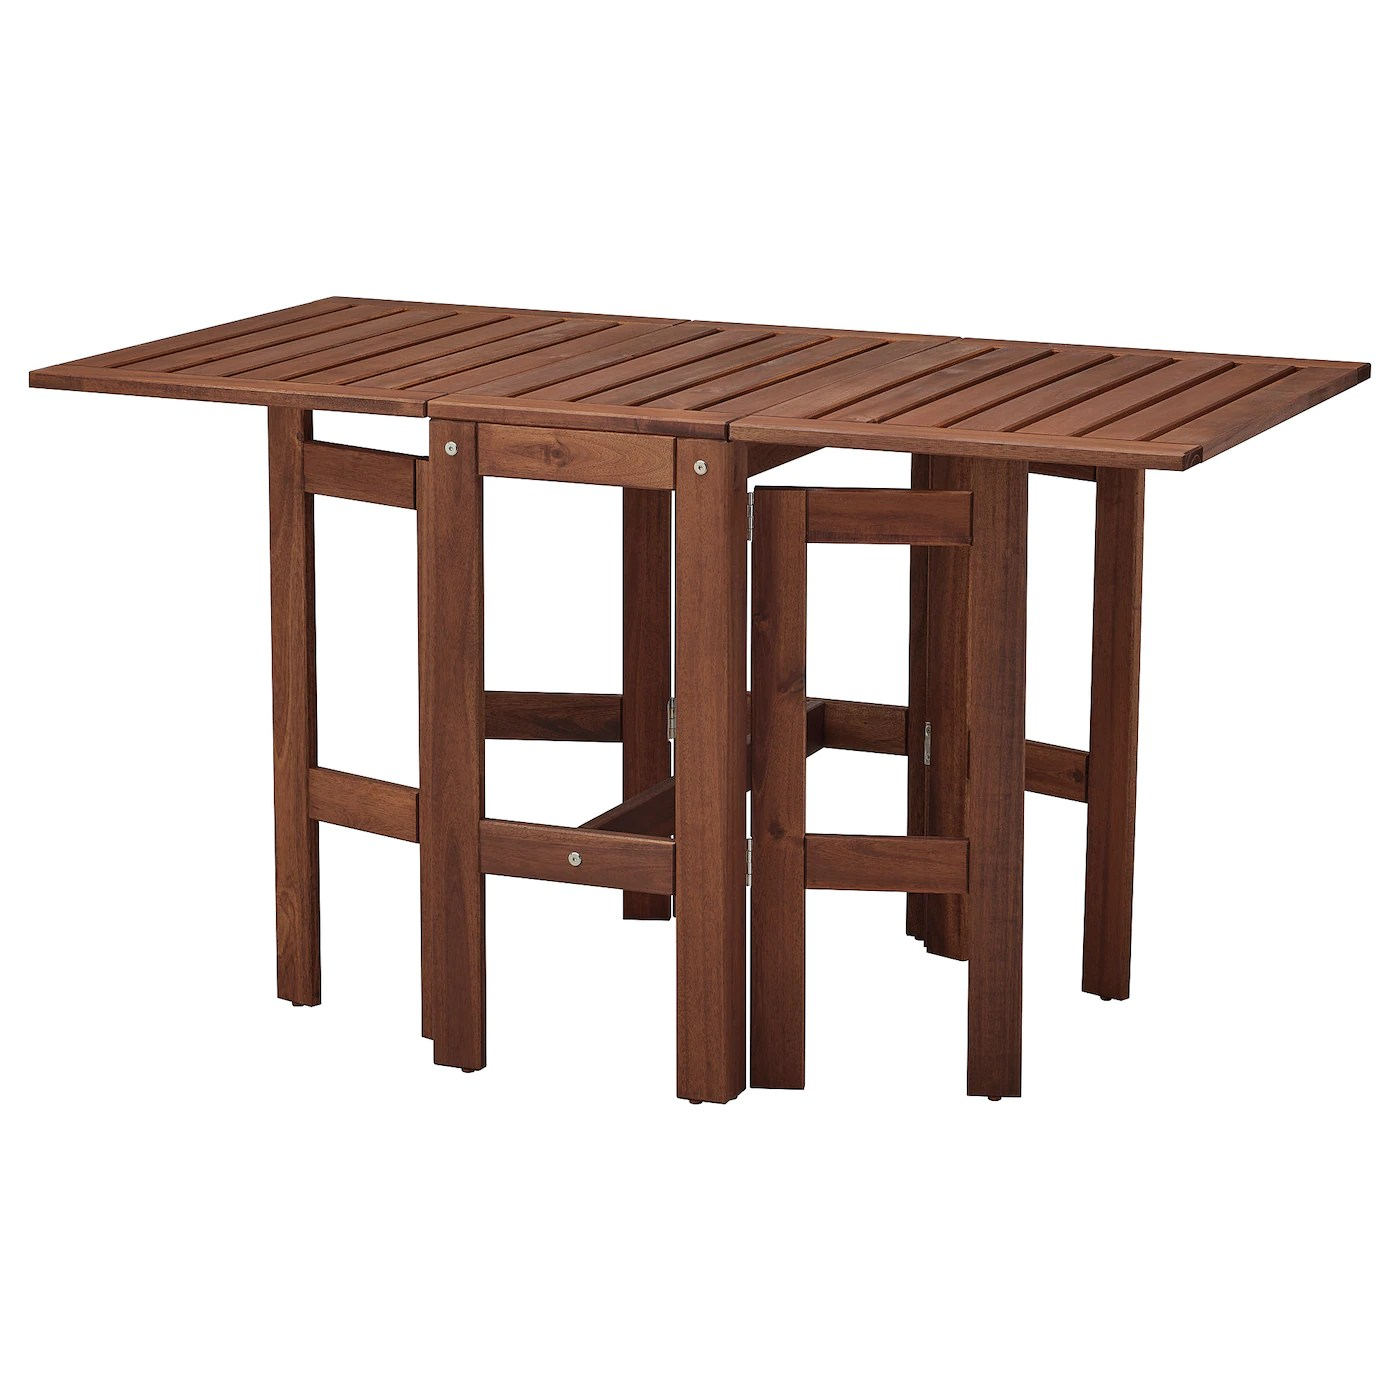 applaro table pliante exterieur teinte brun 34 83 131x70 cm